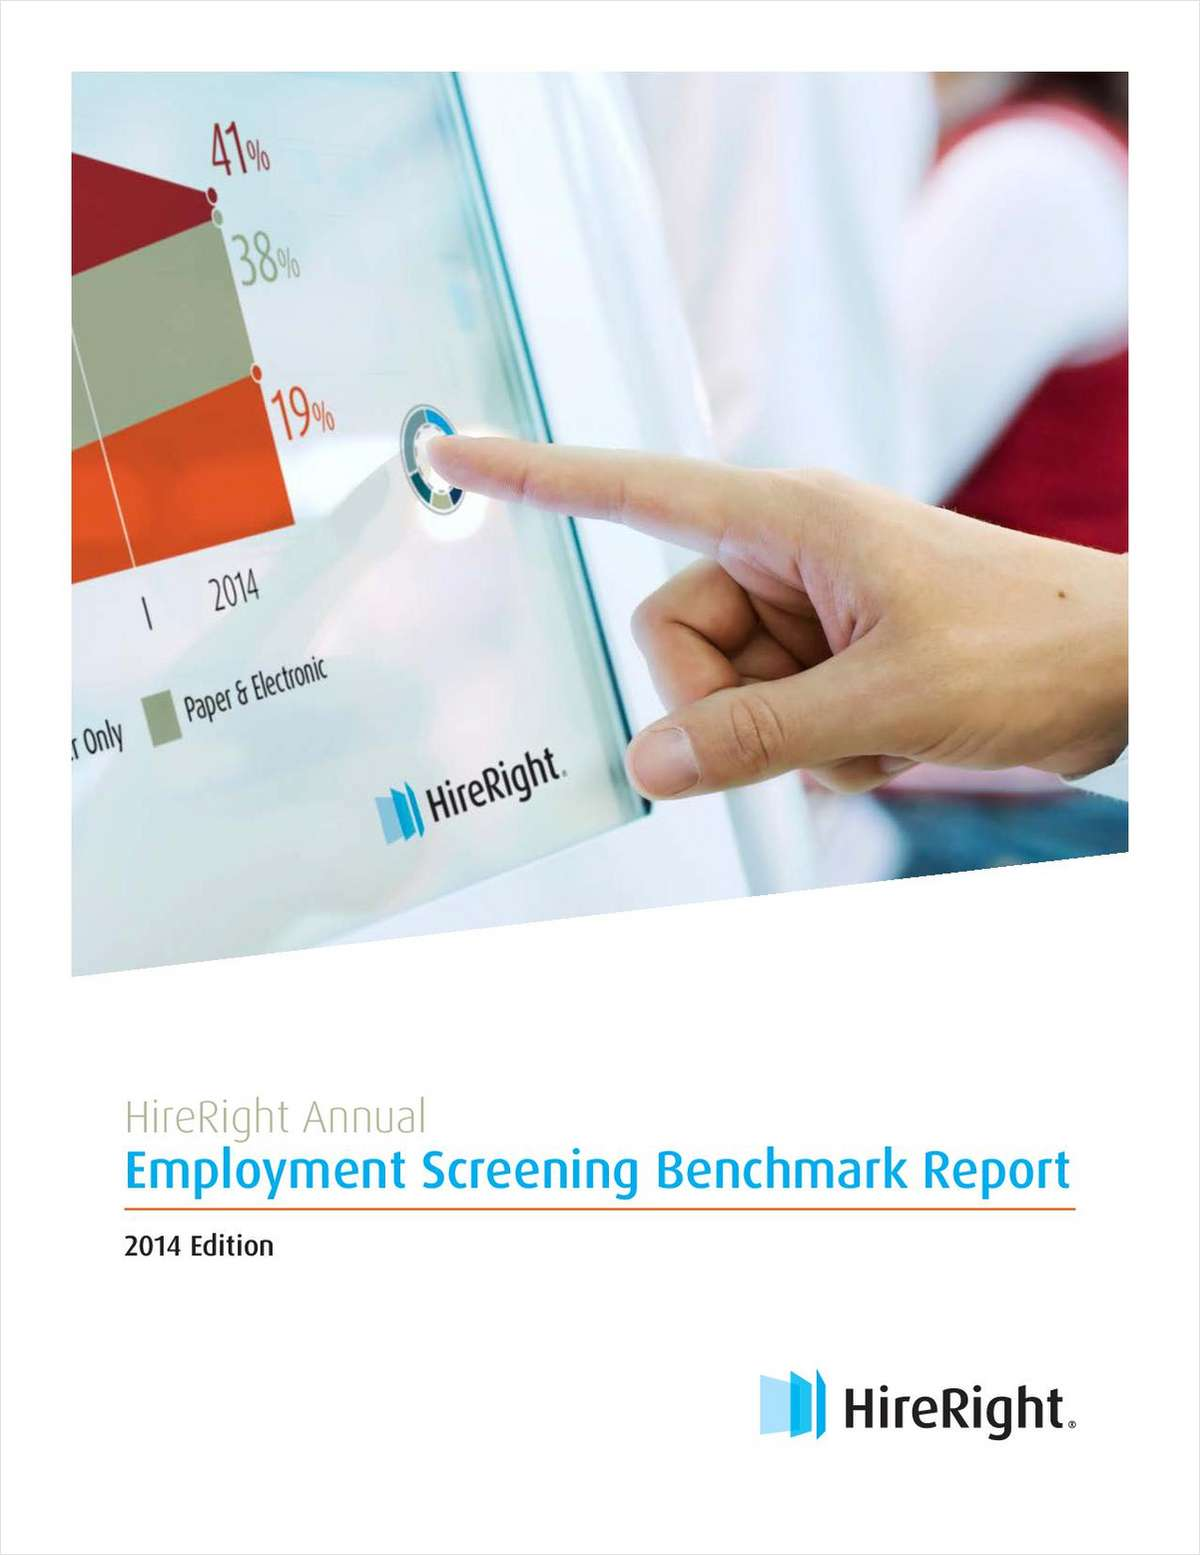 The 2014 Employment Screening Benchmarking Report, Free